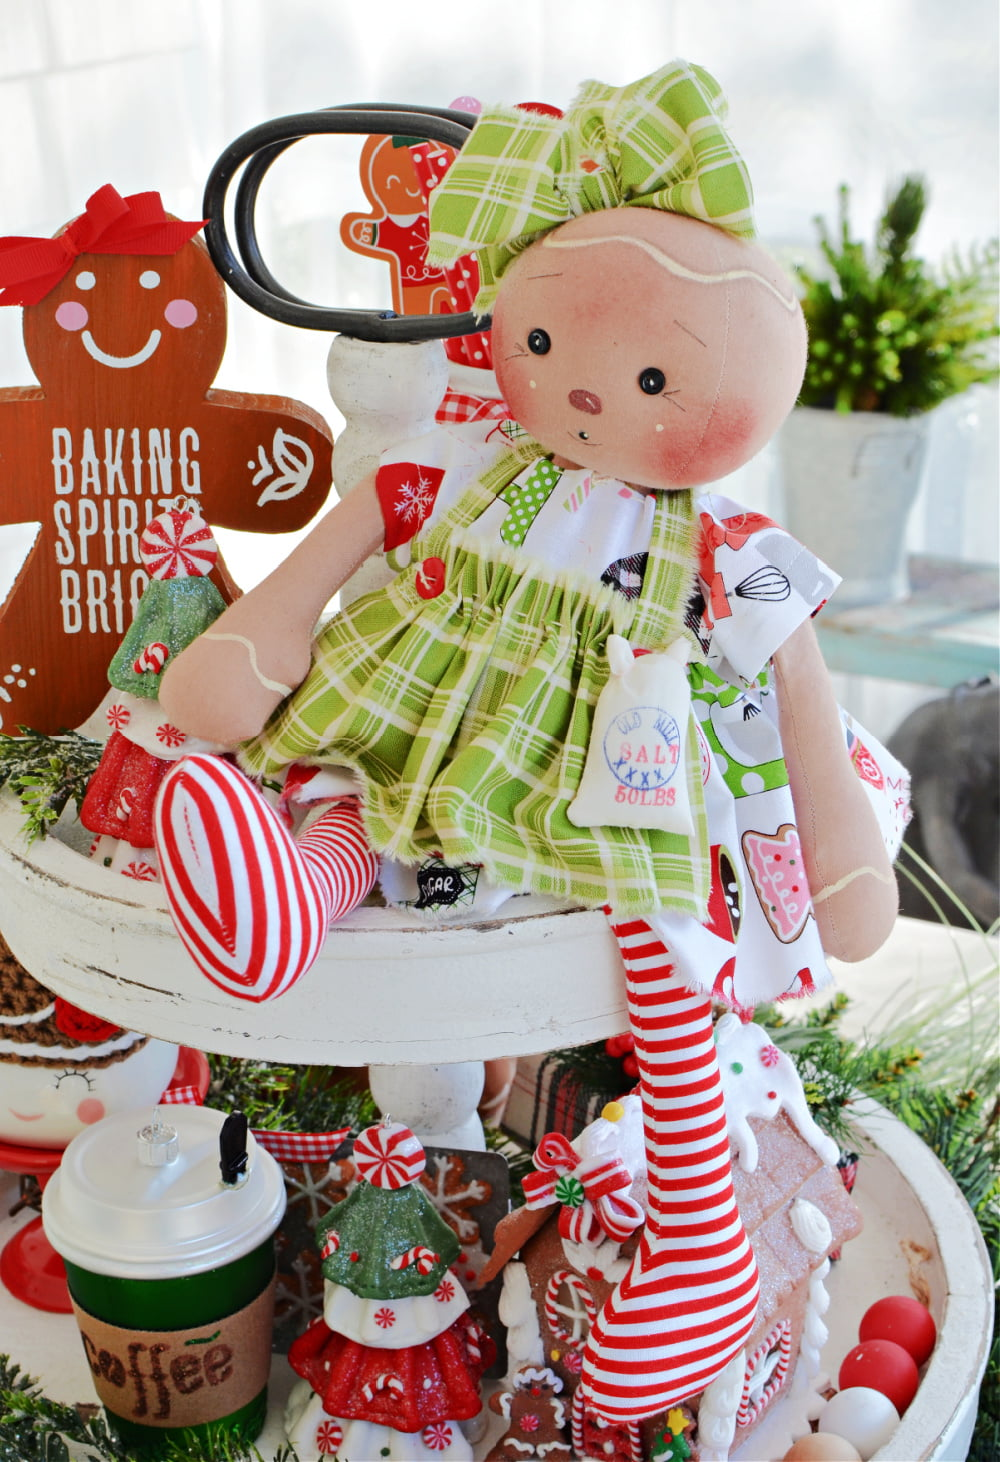 gingerbread doll on a tiered tray